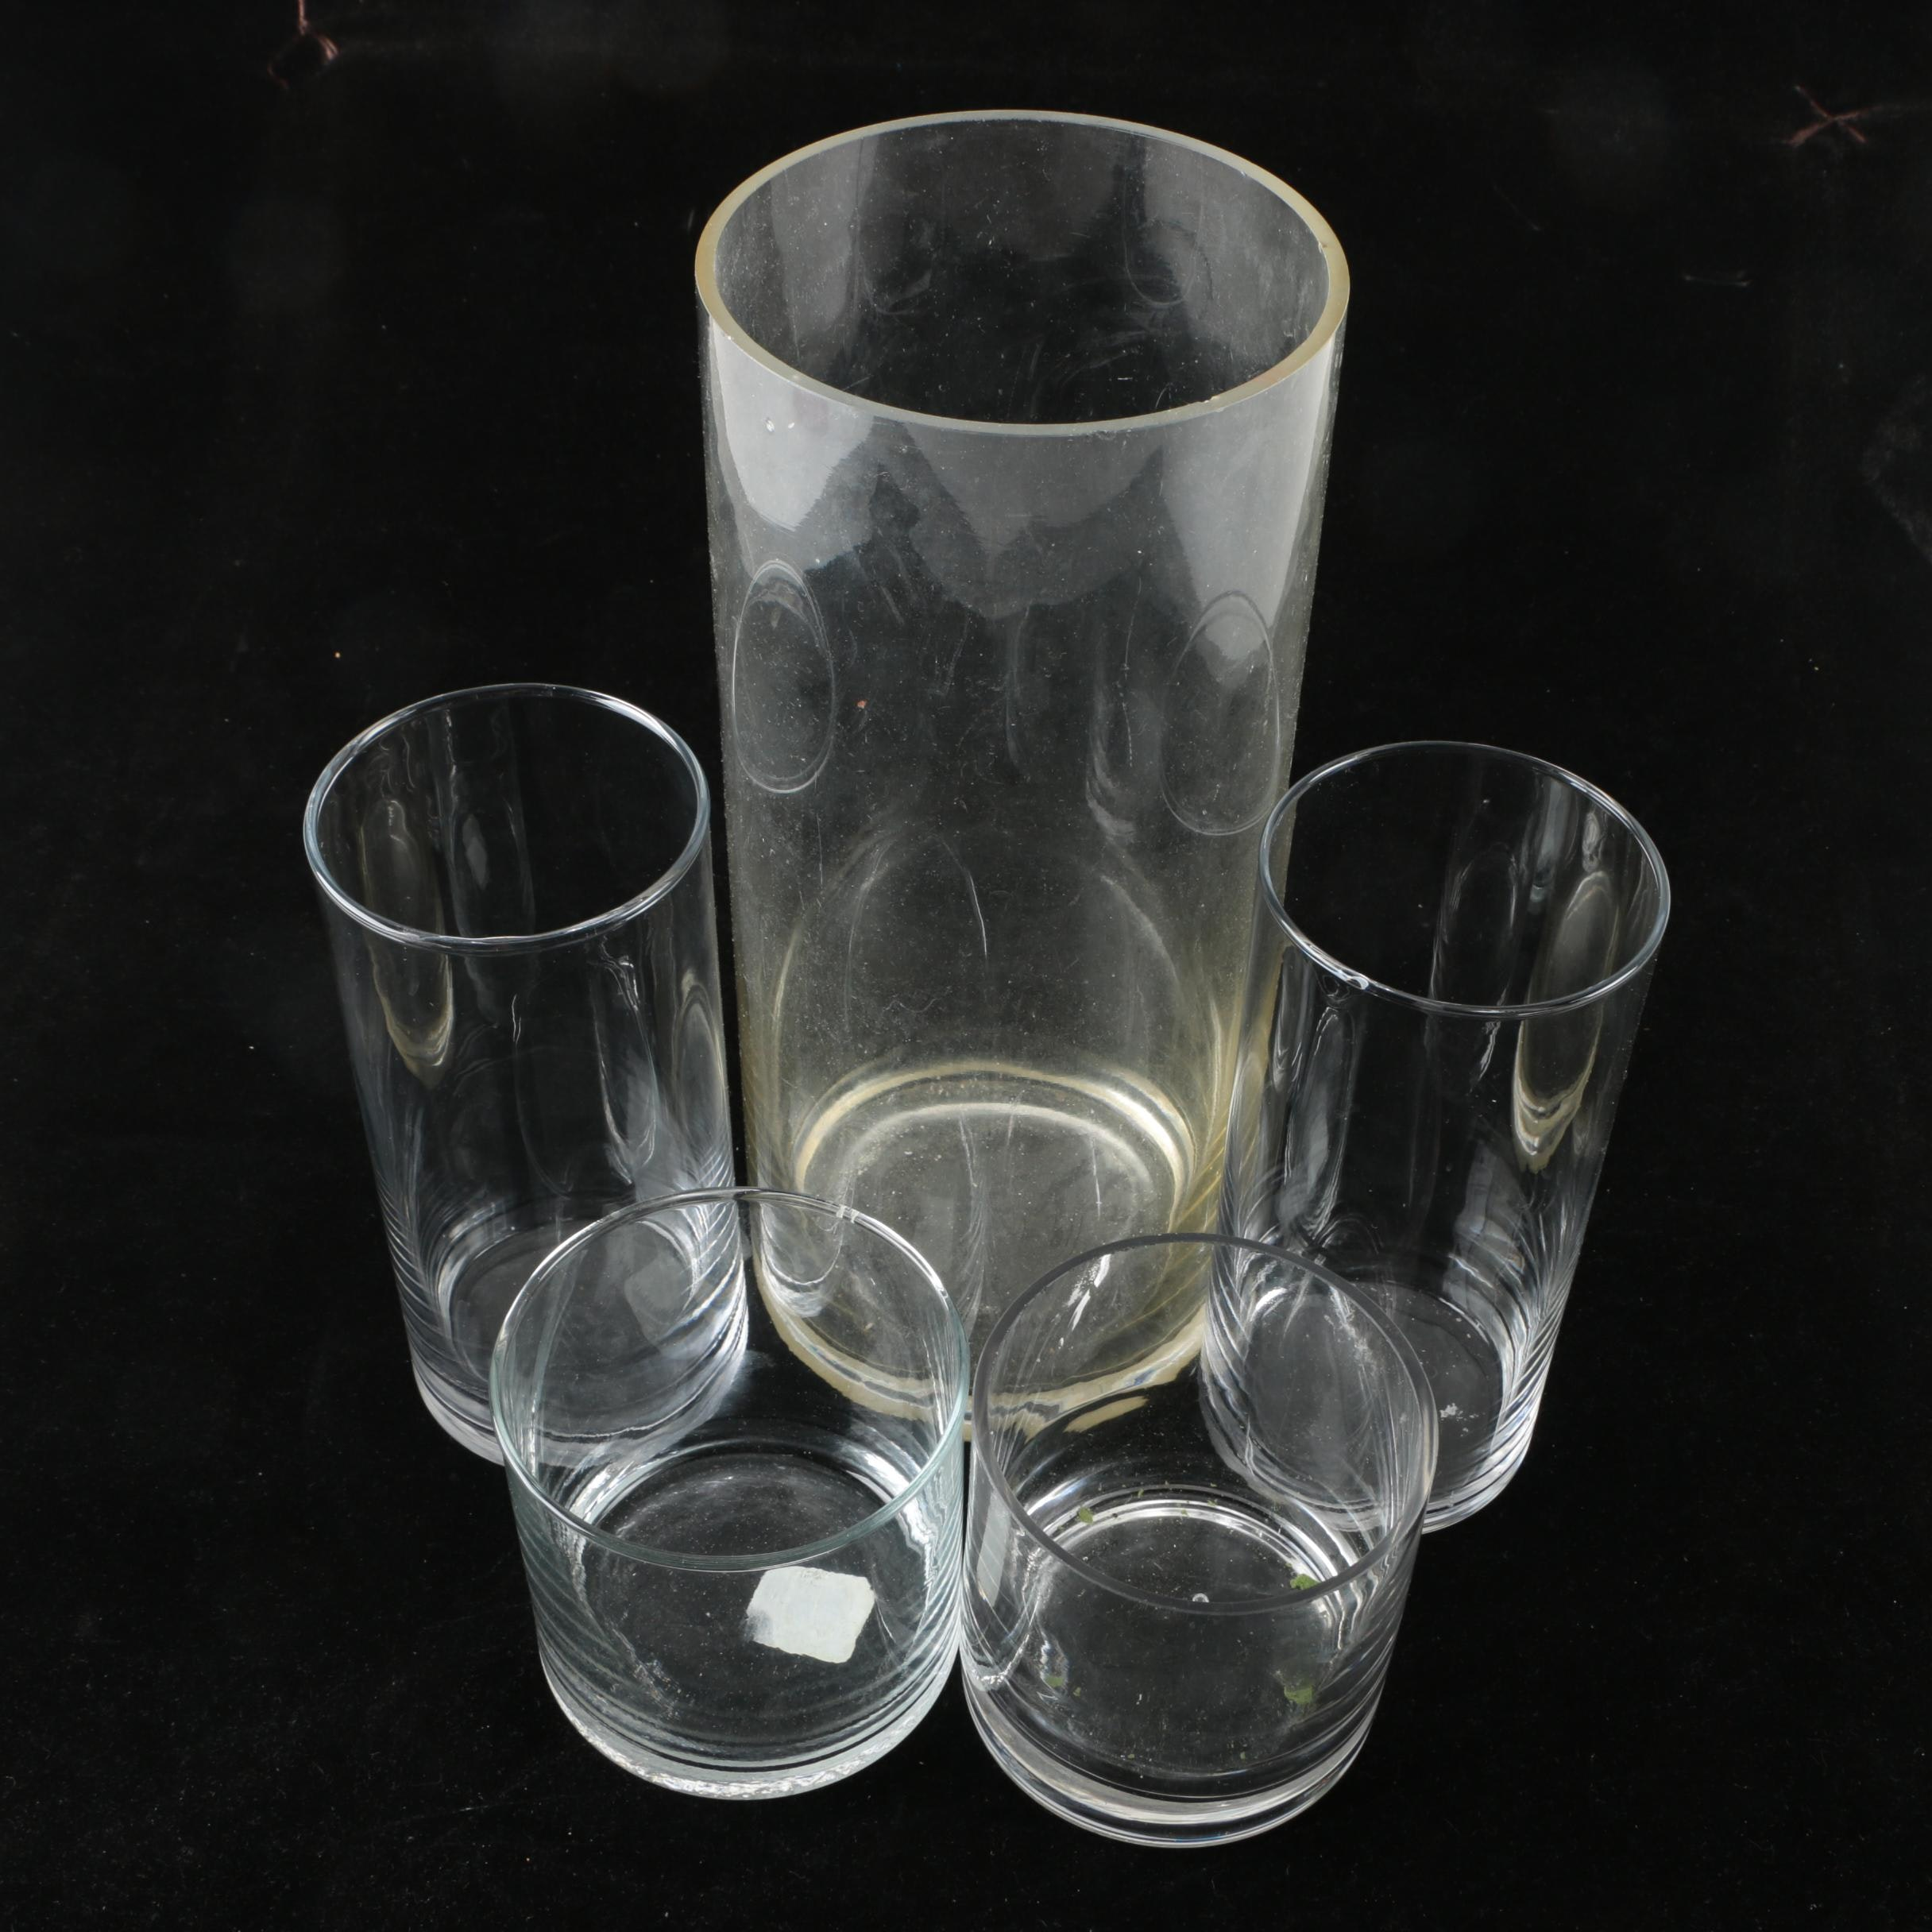 Drinking Glasses and Vase